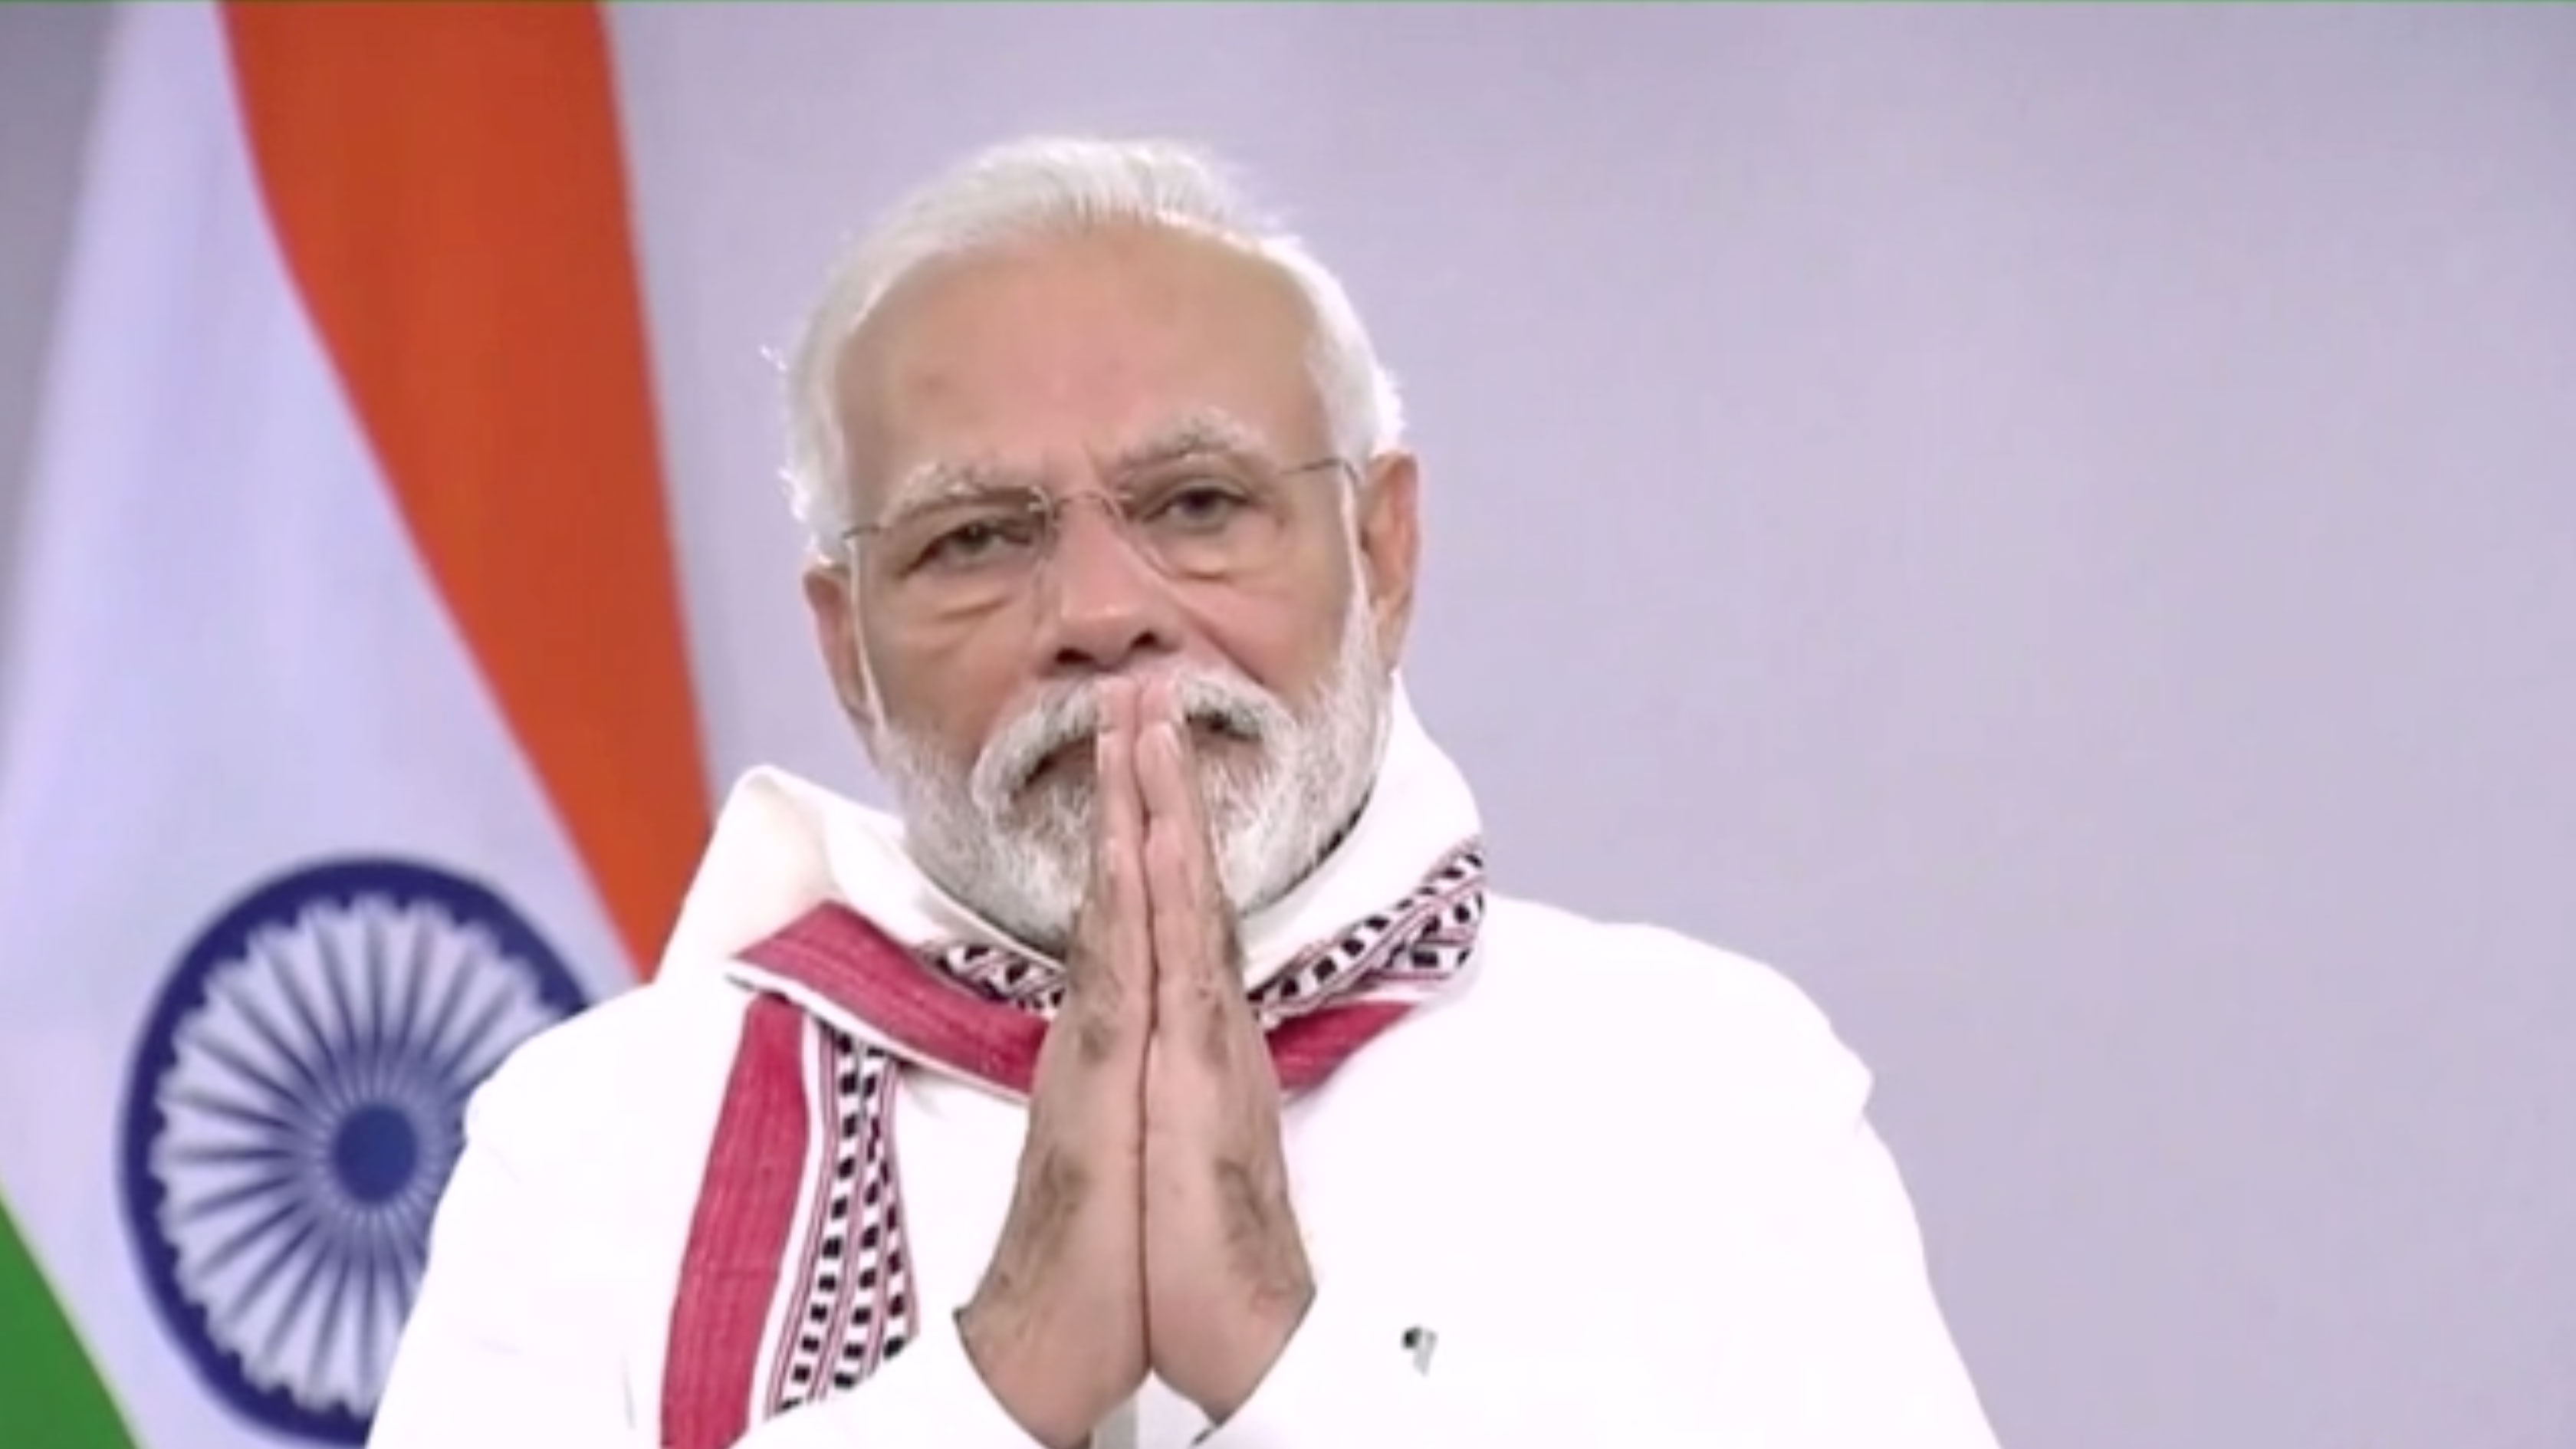 Indian Prime Minister Narendra Modi thanked citizens for abiding by lockdown restrictions in a televised address to the nation on Tuesday.